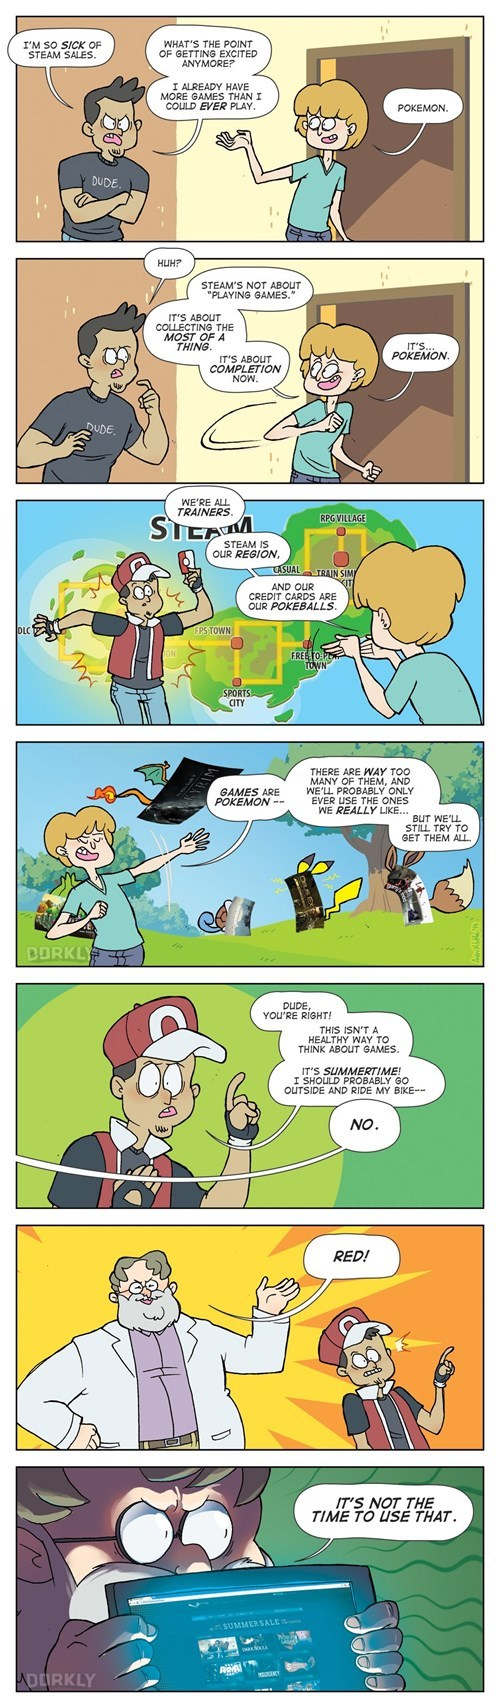 dorkly steam sales steam web comics - 8234222336